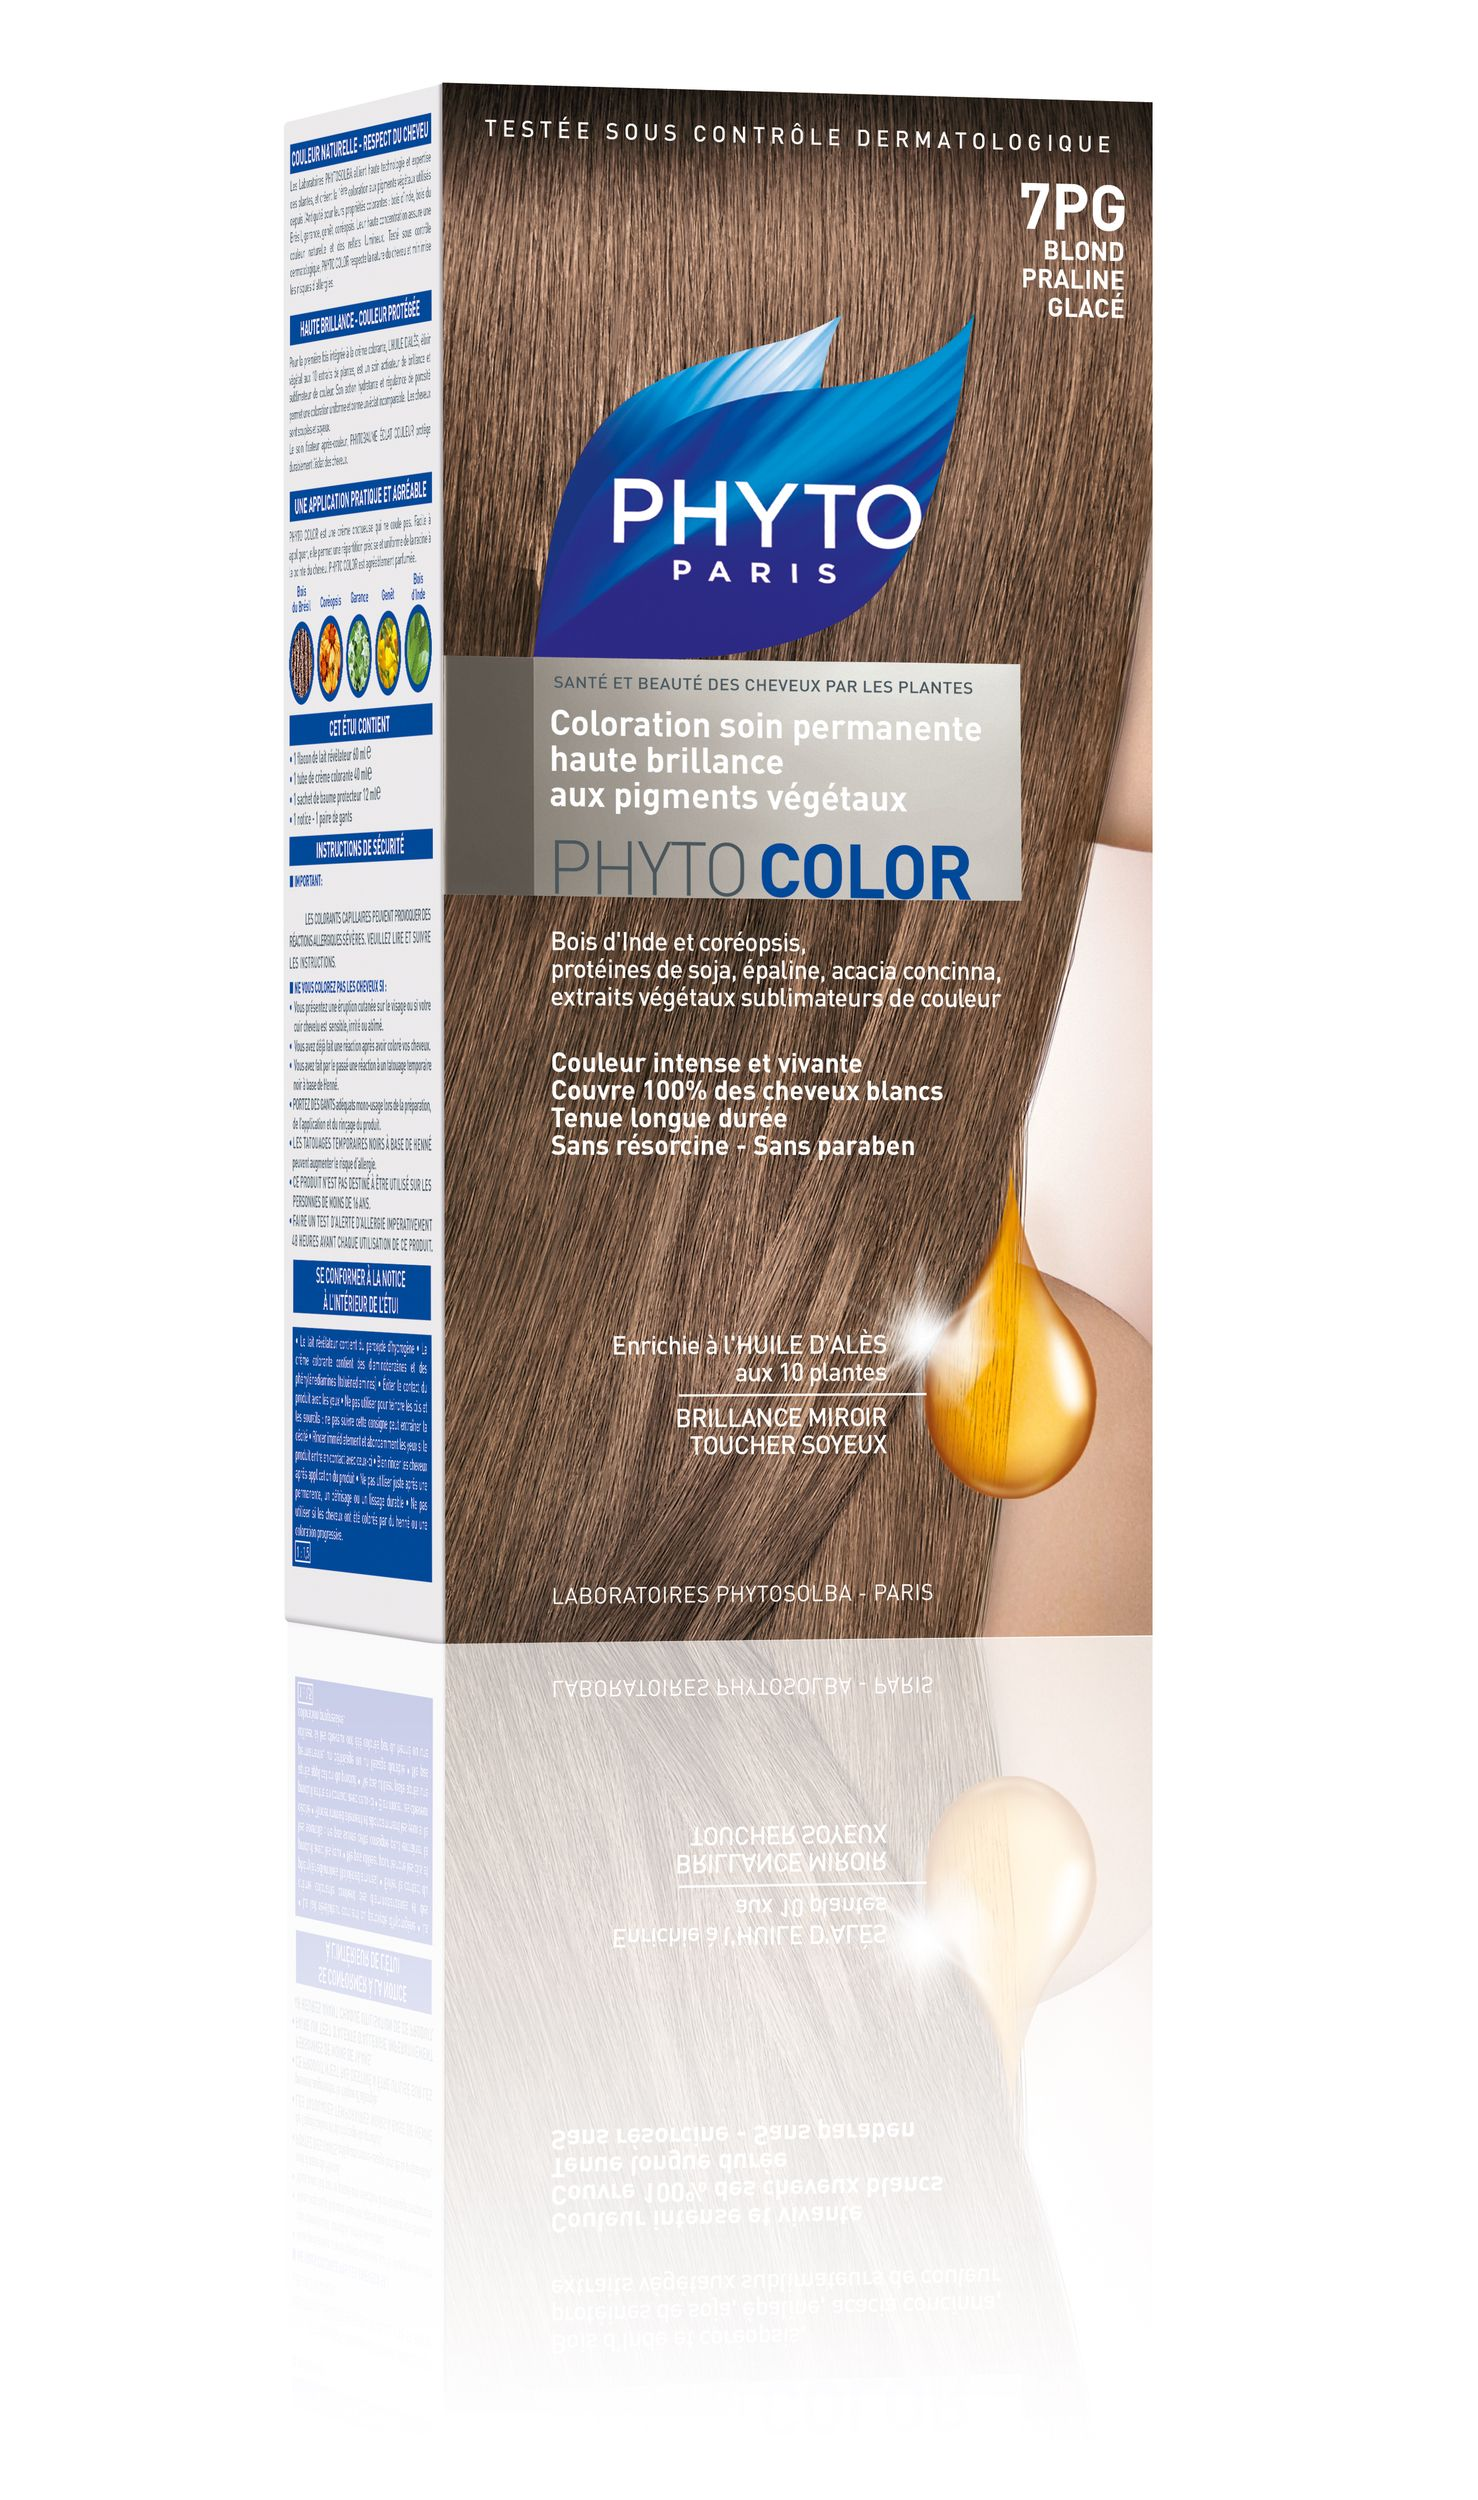 phytocolor coloration permanente tous cheveux nuance 7pg blond pralin glac phyto - Coloration Phyto